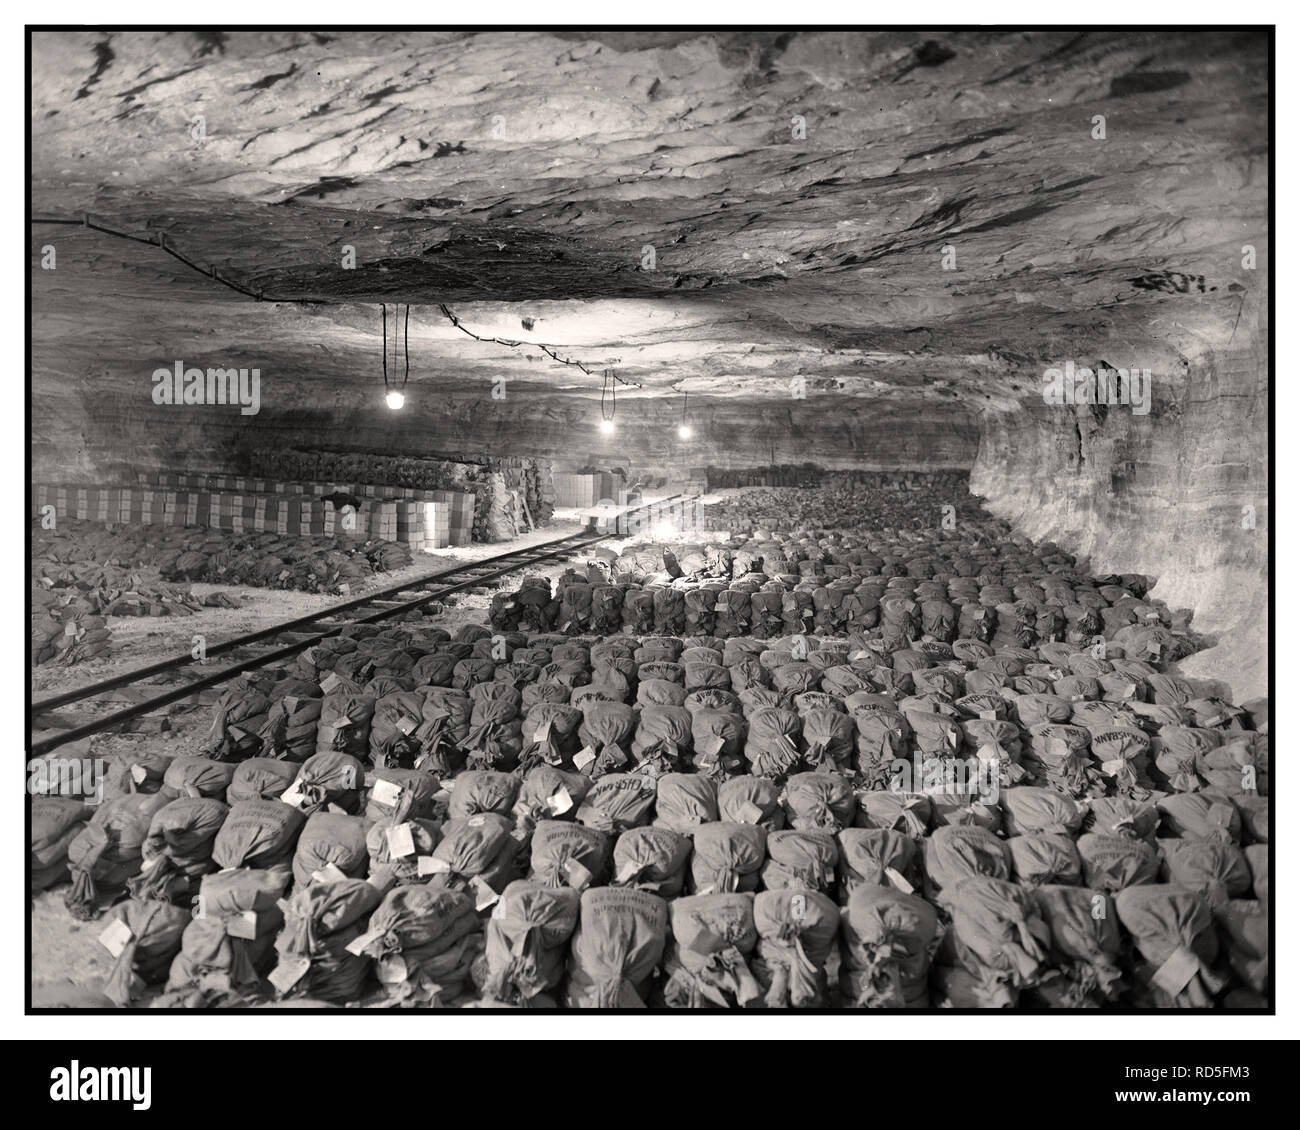 NAZI LOOT Hidden stashed in a salt mine. The 90th Division, U.S. Third Army, discovered this Third Reich wealth, SS looted gold money and museum paintings that were removed from Nazi Berlin to a salt mine vault in Merkers, Germany 1945 - Stock Image